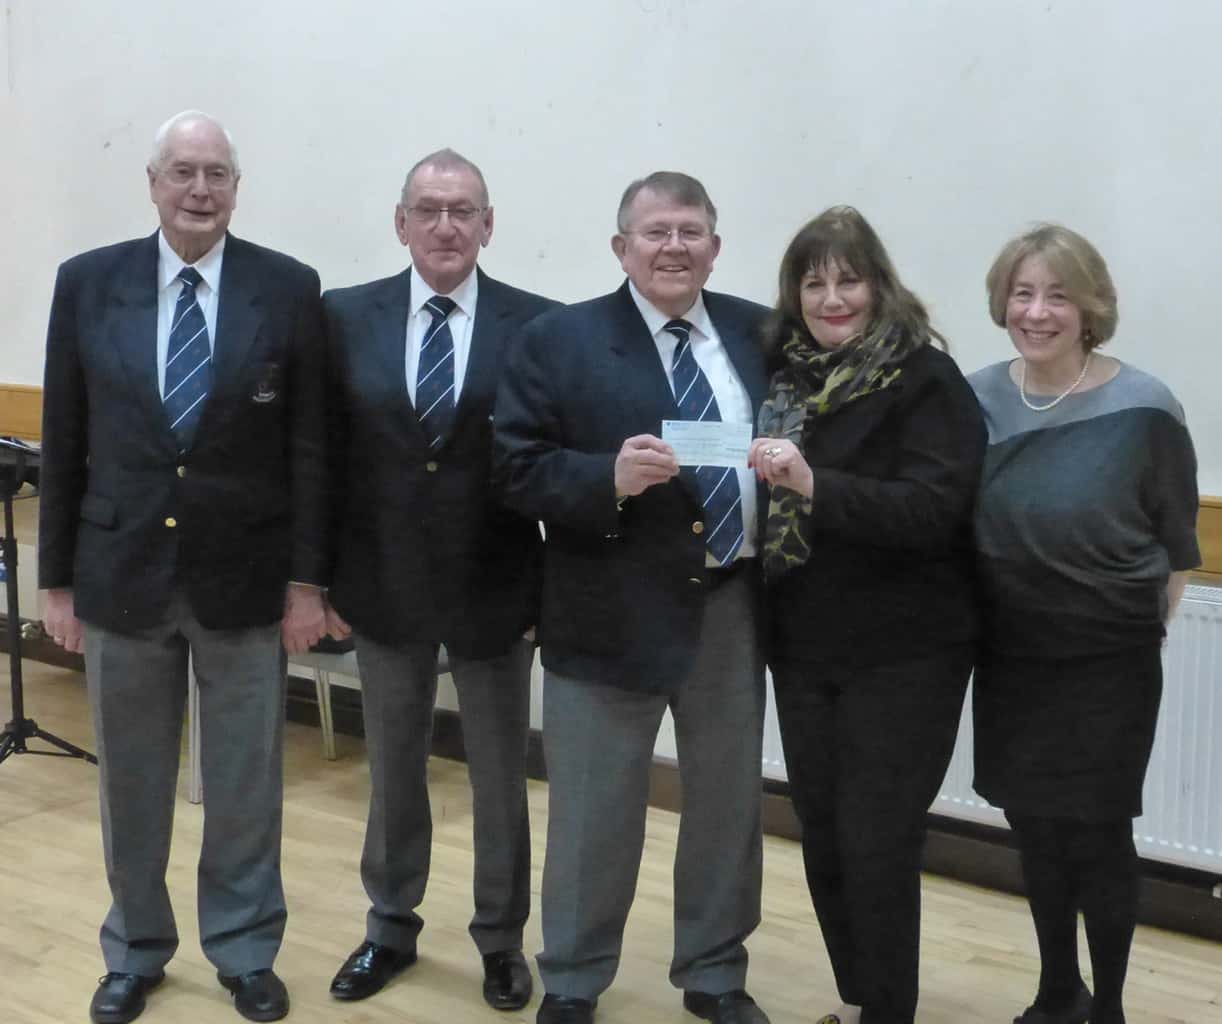 Rushmoor male voice choir raises £1,500 for young persons' hospices